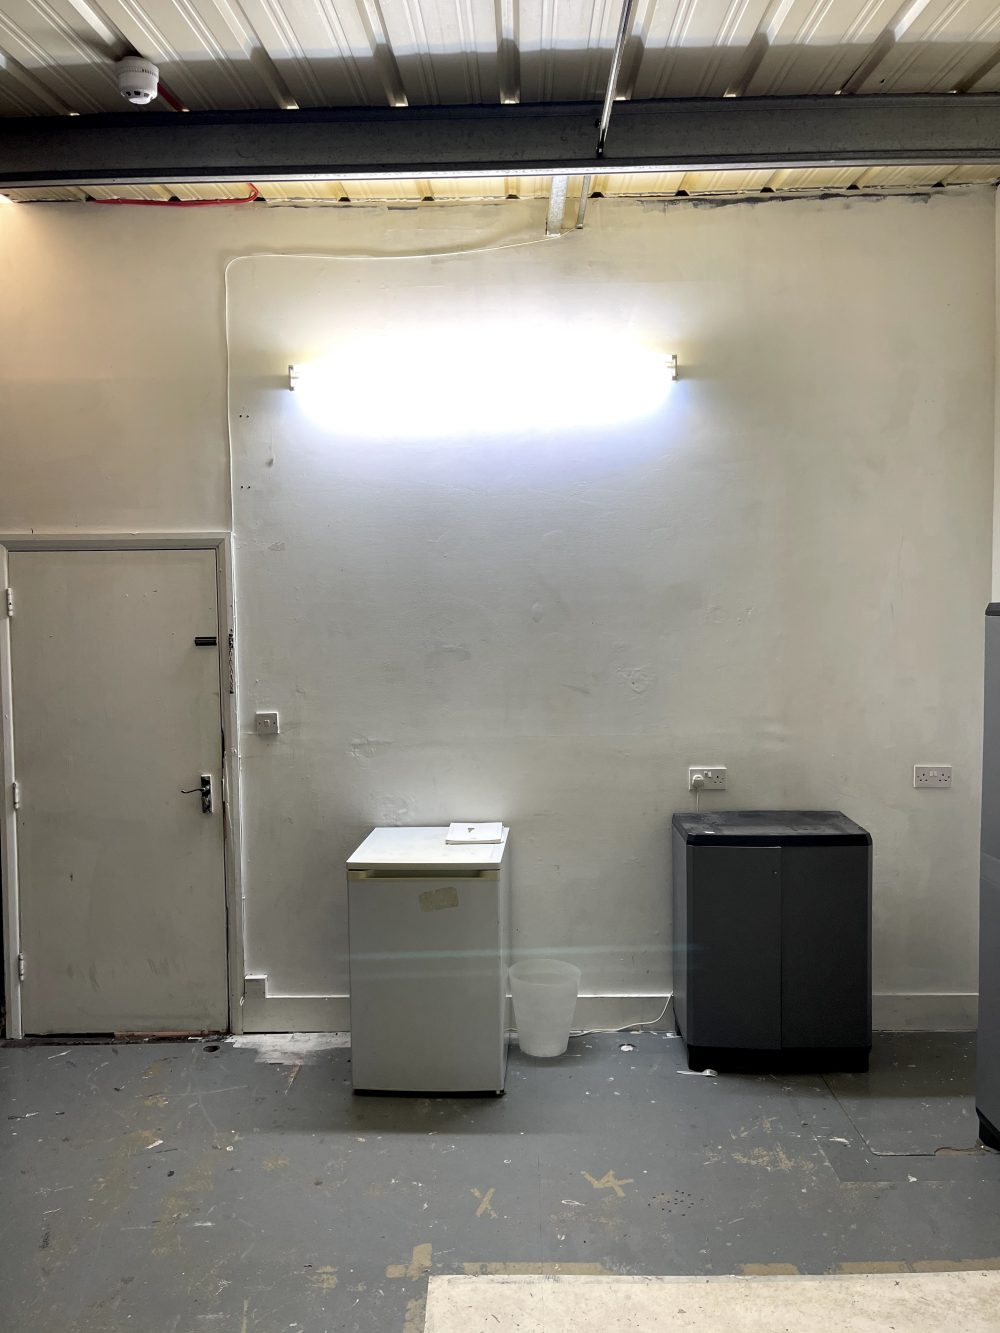 Light indurstrial unit to rent in N16 Stoke Newington Shelford Place PIc3